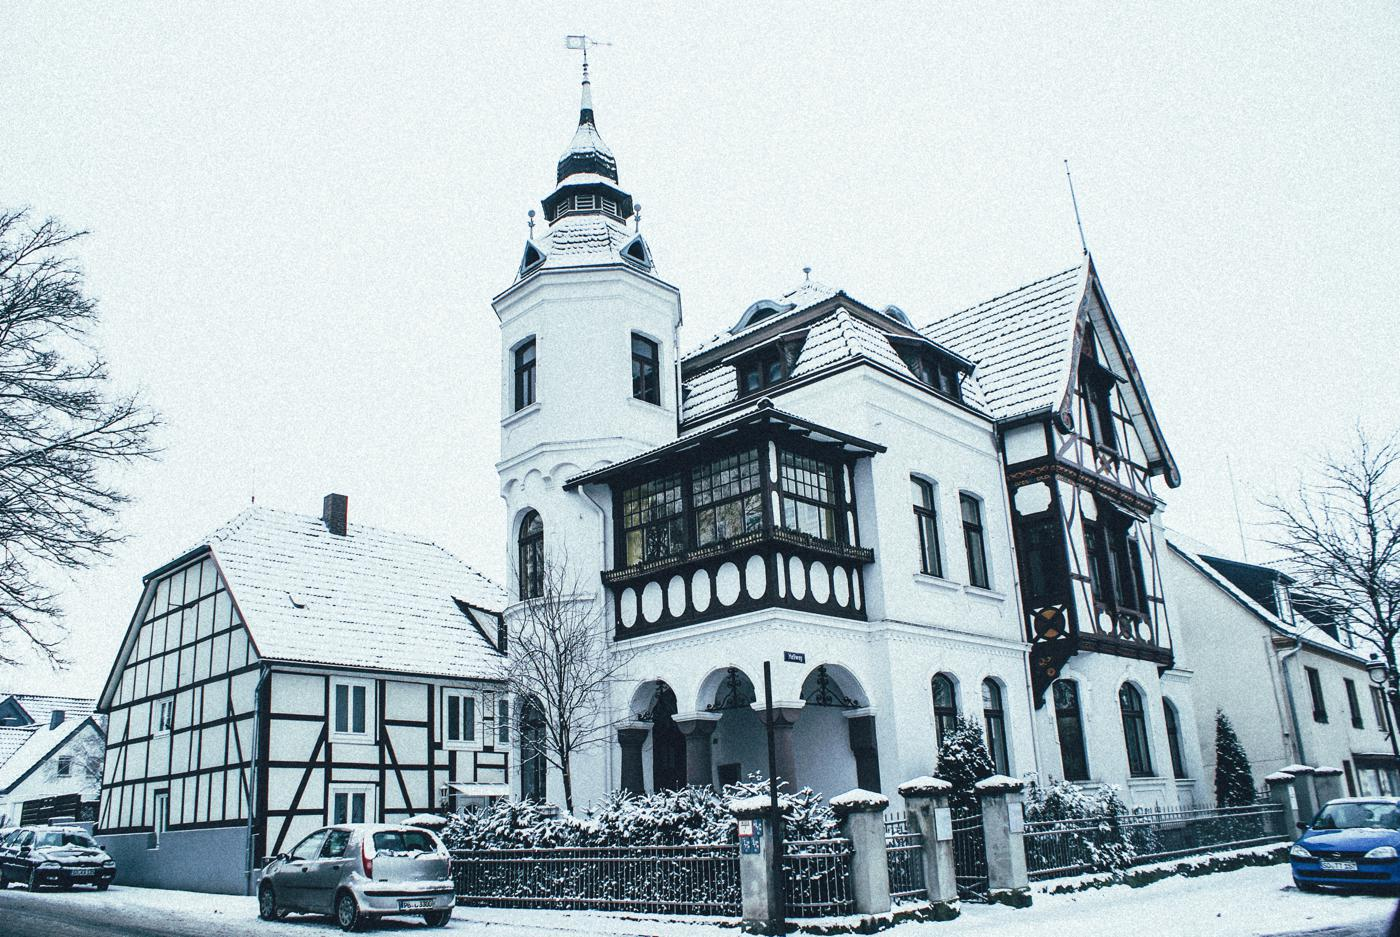 Snow, Winter, Driving in Germany (4)